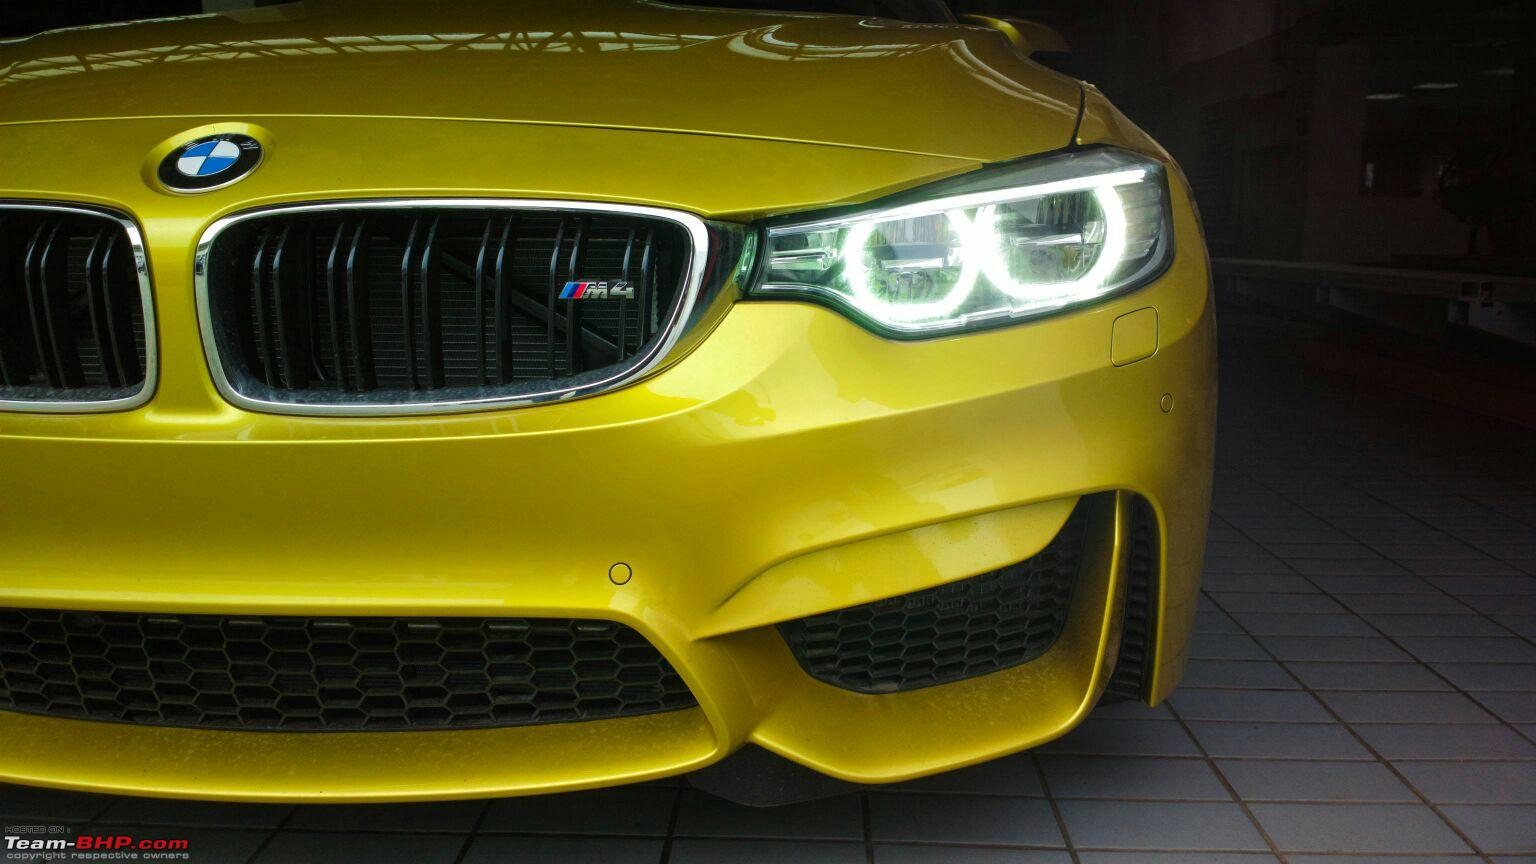 New 2015 Bmw M3 And Bmw M4 Spotted In India Launch Soon Motoroids